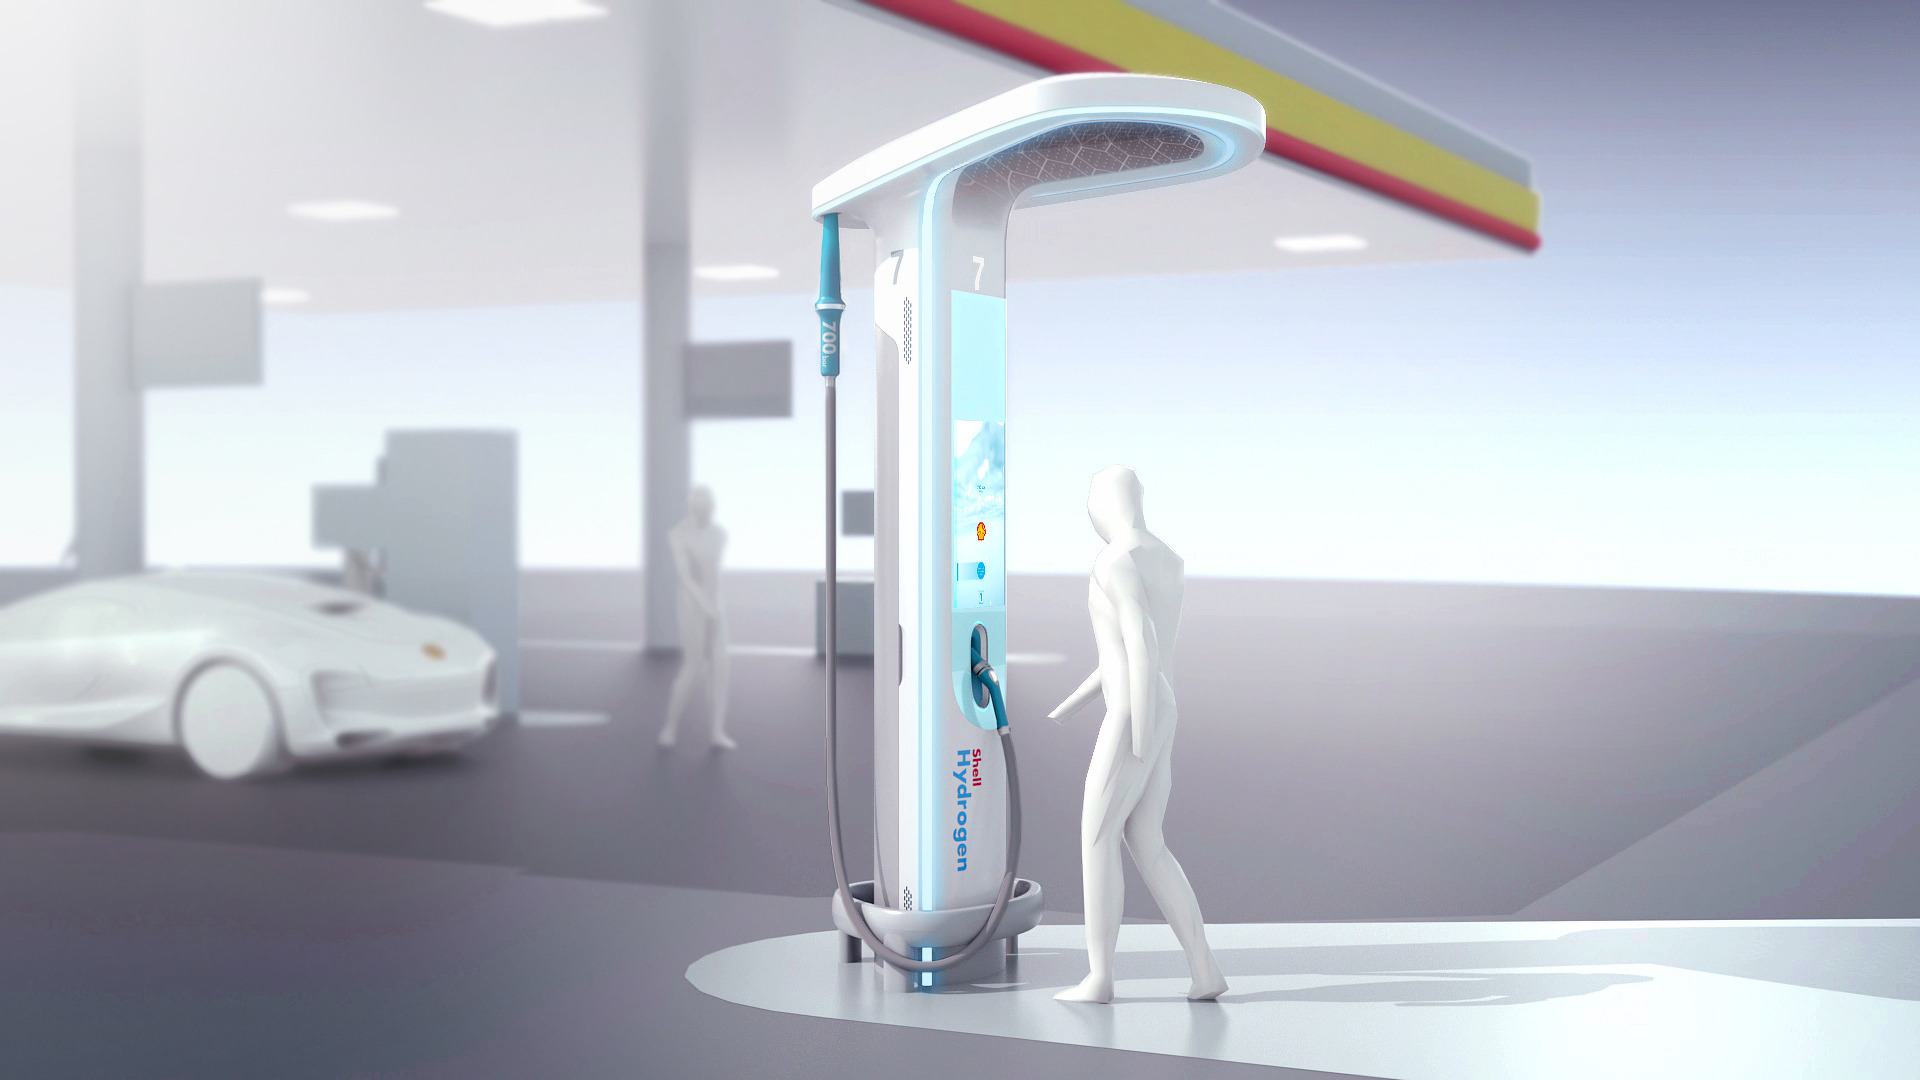 BMW Hydrogen Refueling Station (2)